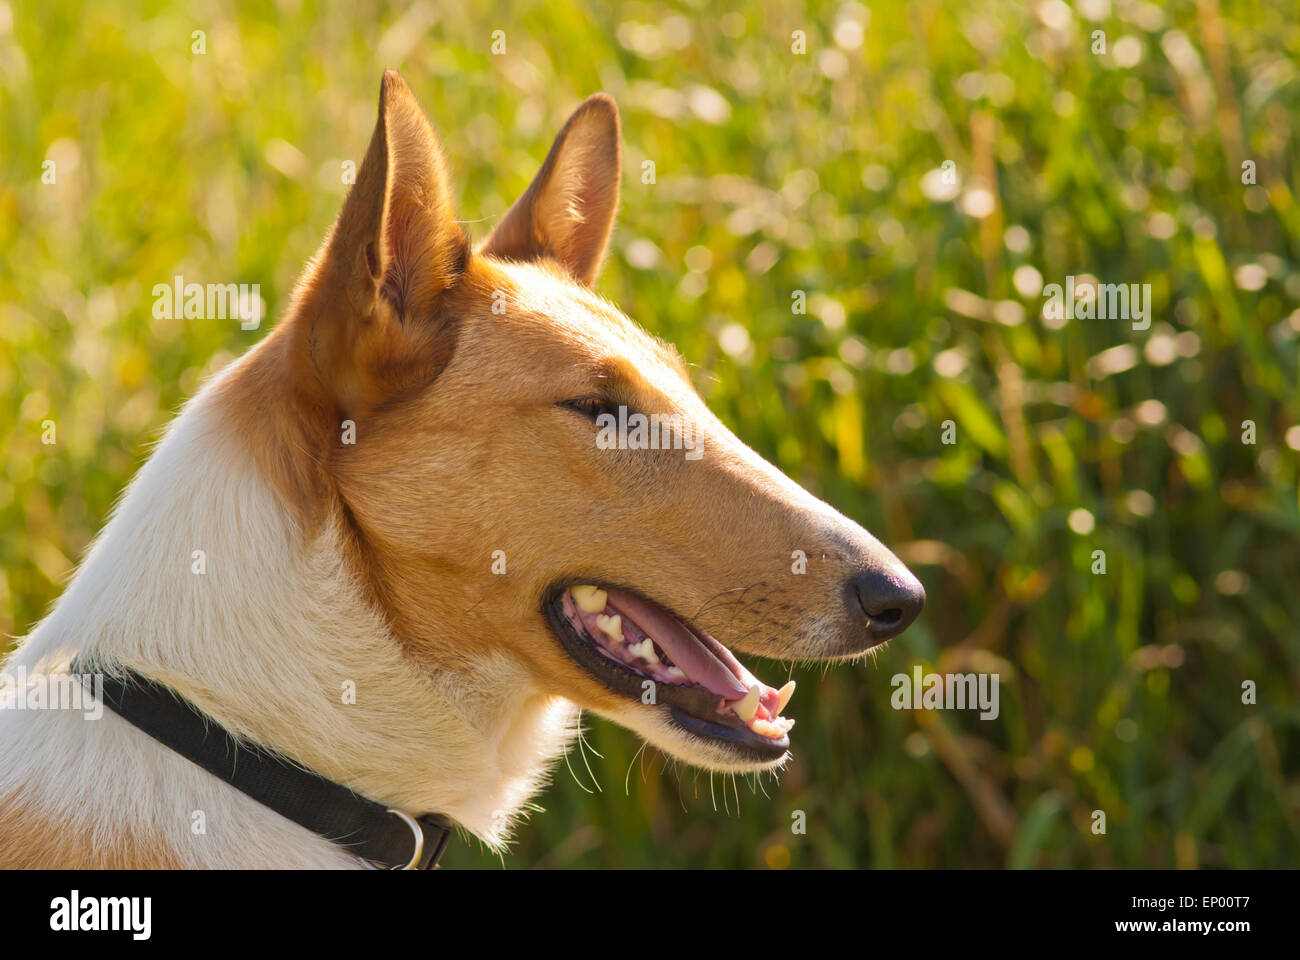 Profile view of a smooth collie dog, Canis lupus familiaris. - Stock Image